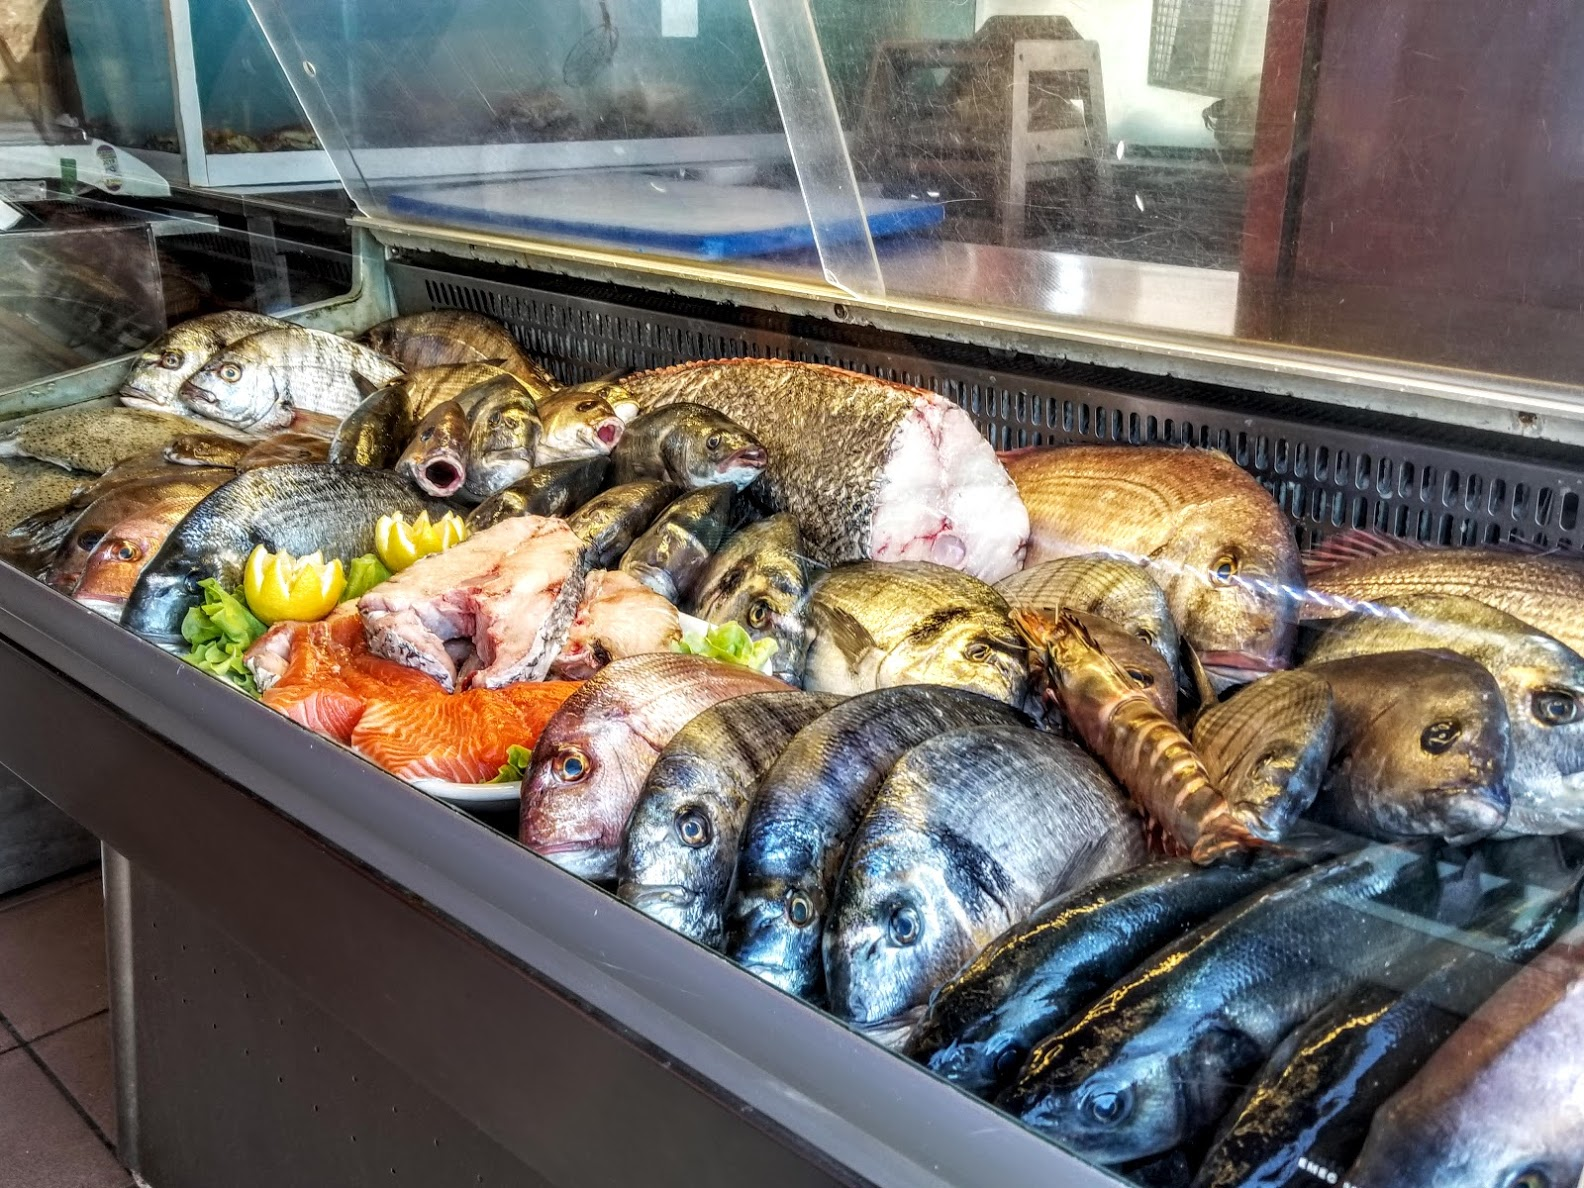 This incredible display of fresh fish is not unsual.